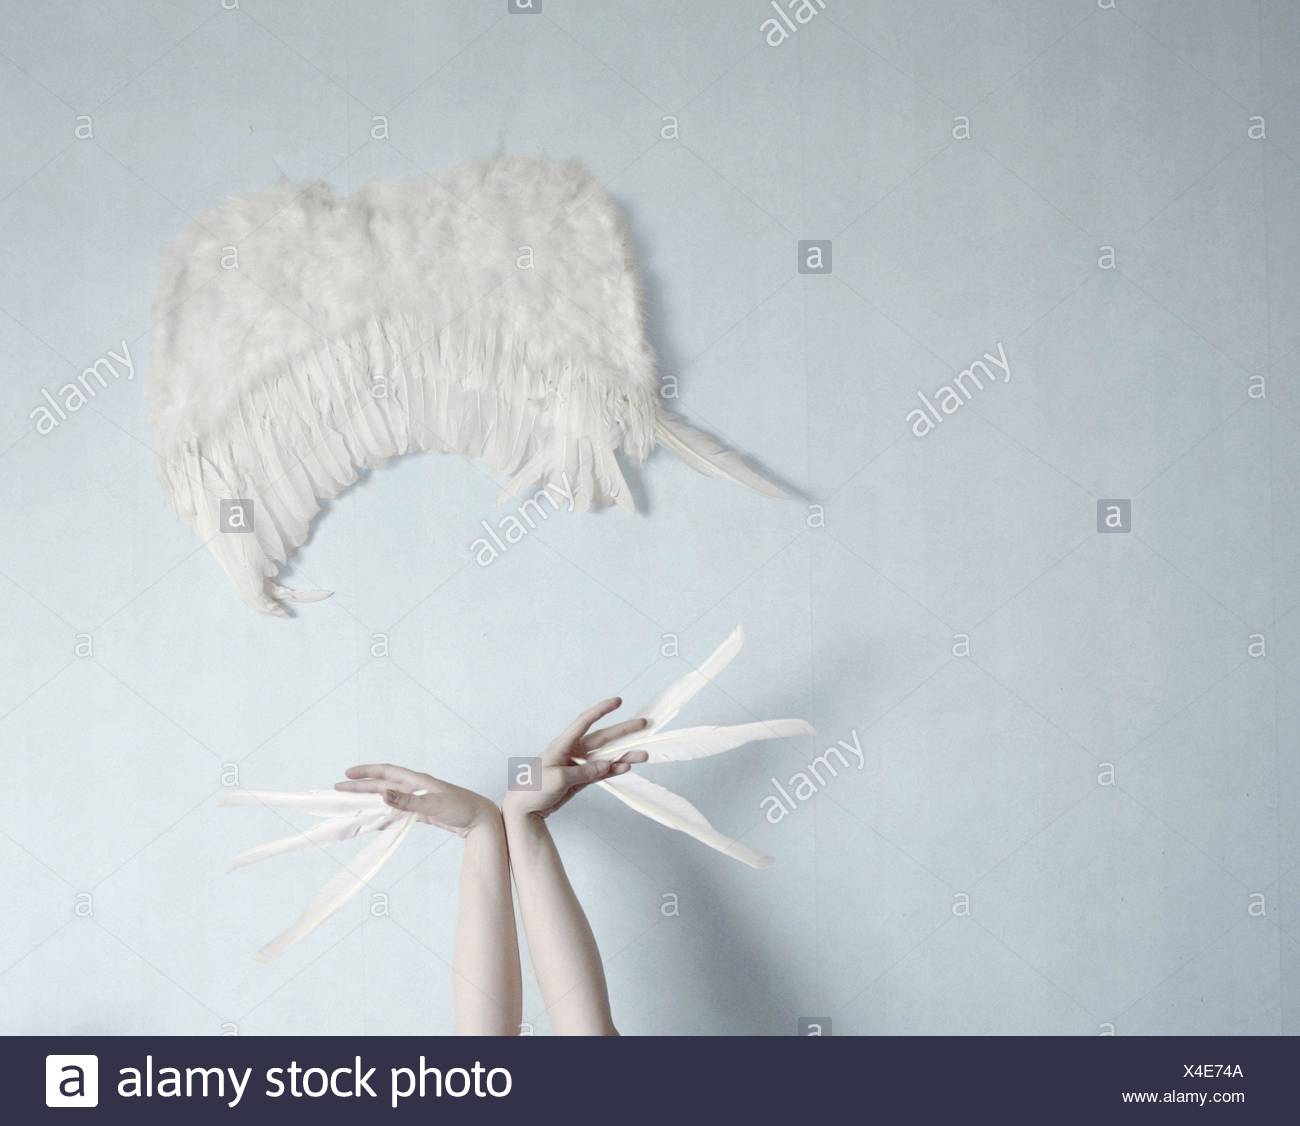 Conceptual shot of wings - Stock Image